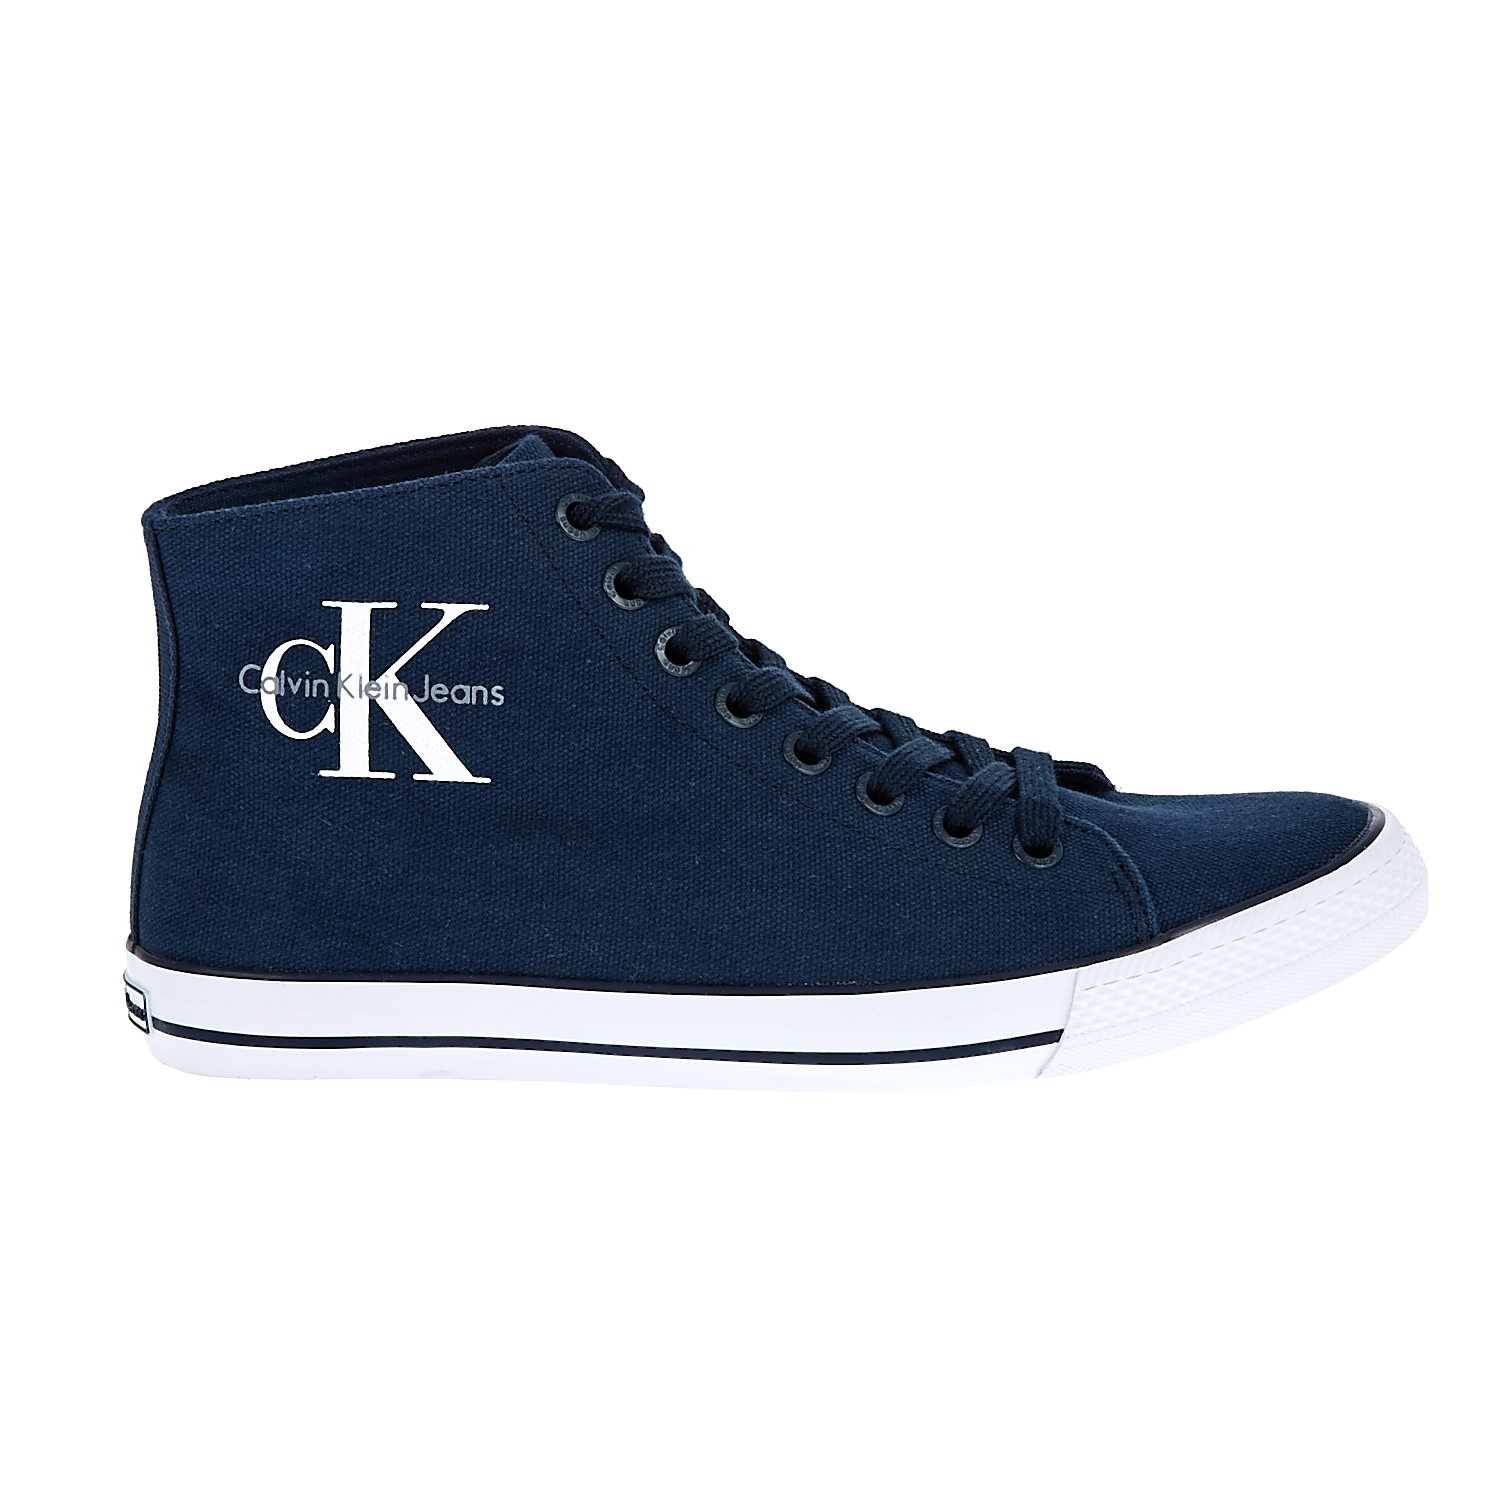 CALVIN KLEIN JEANS – Ανδρικά sneakers Calvin Klein Jeans μπλε